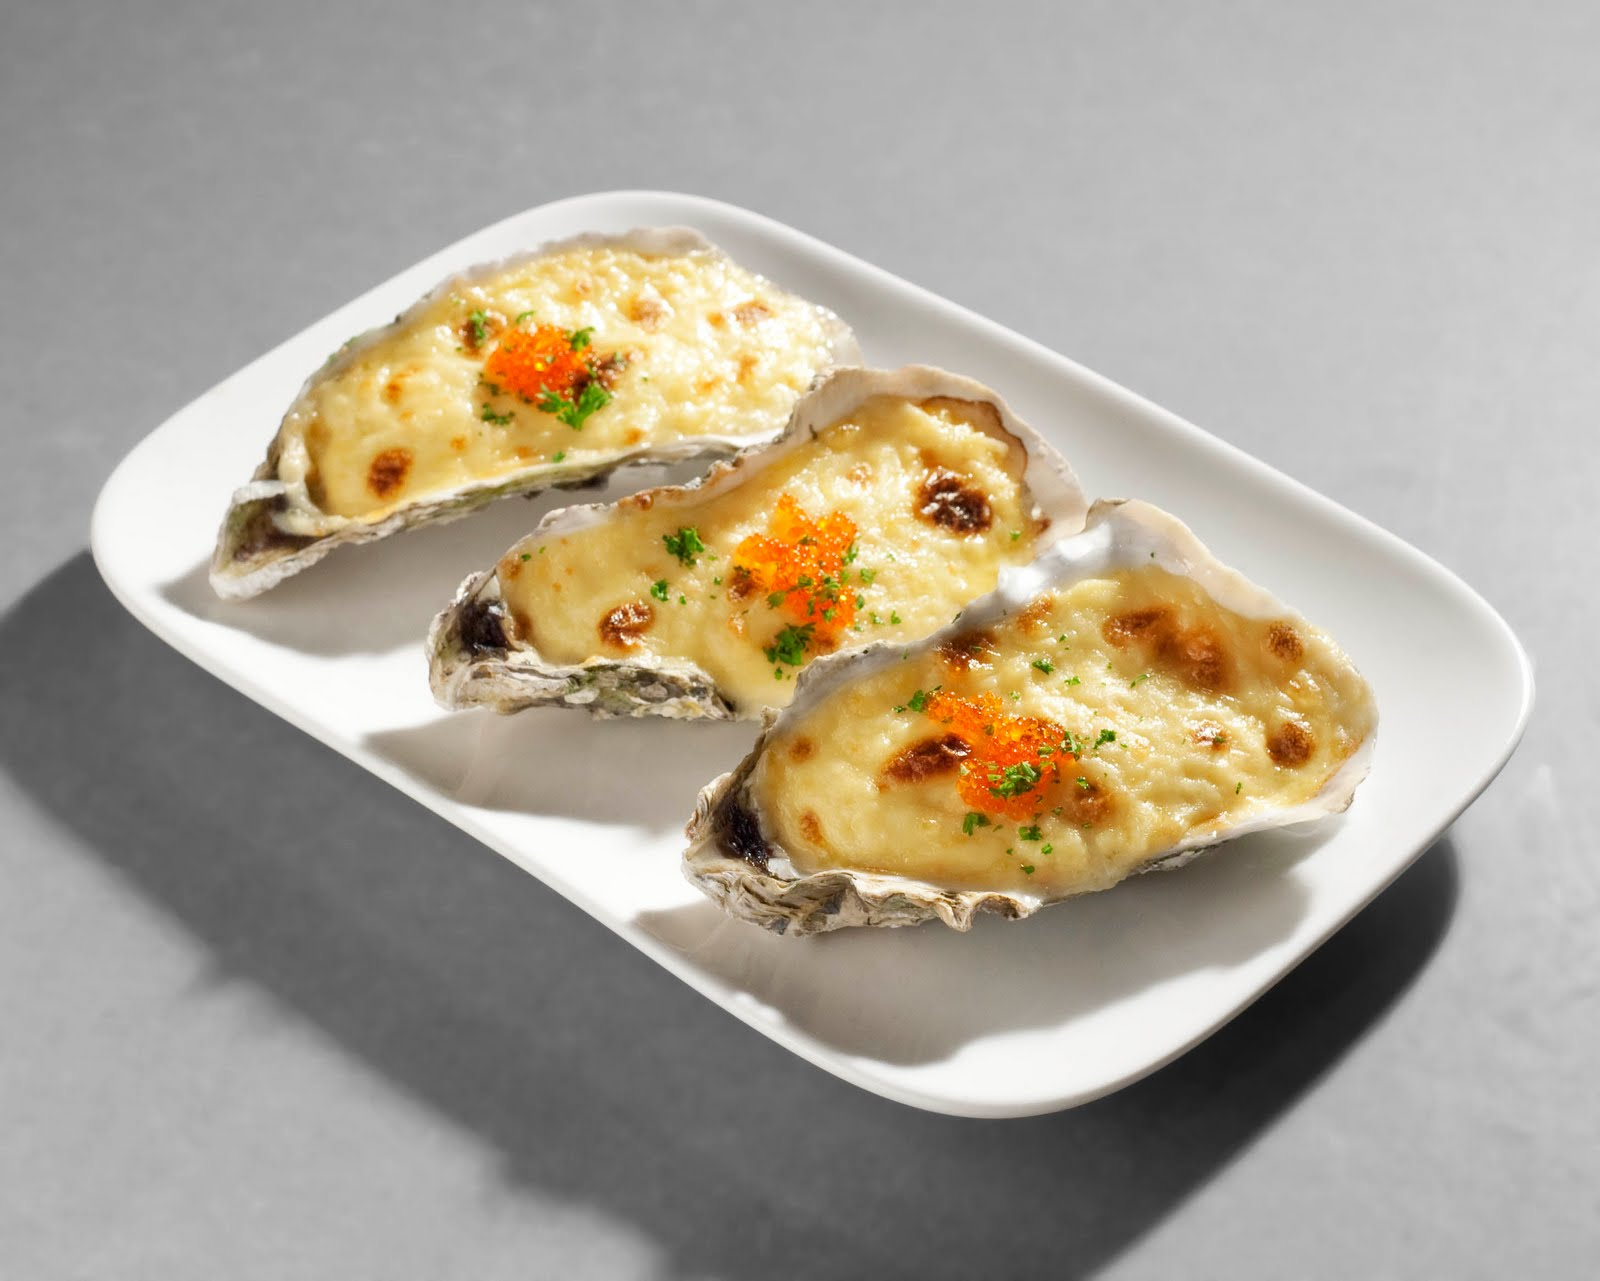 baked oysters decided on oysters so omg the cheese baked oyster baked ...